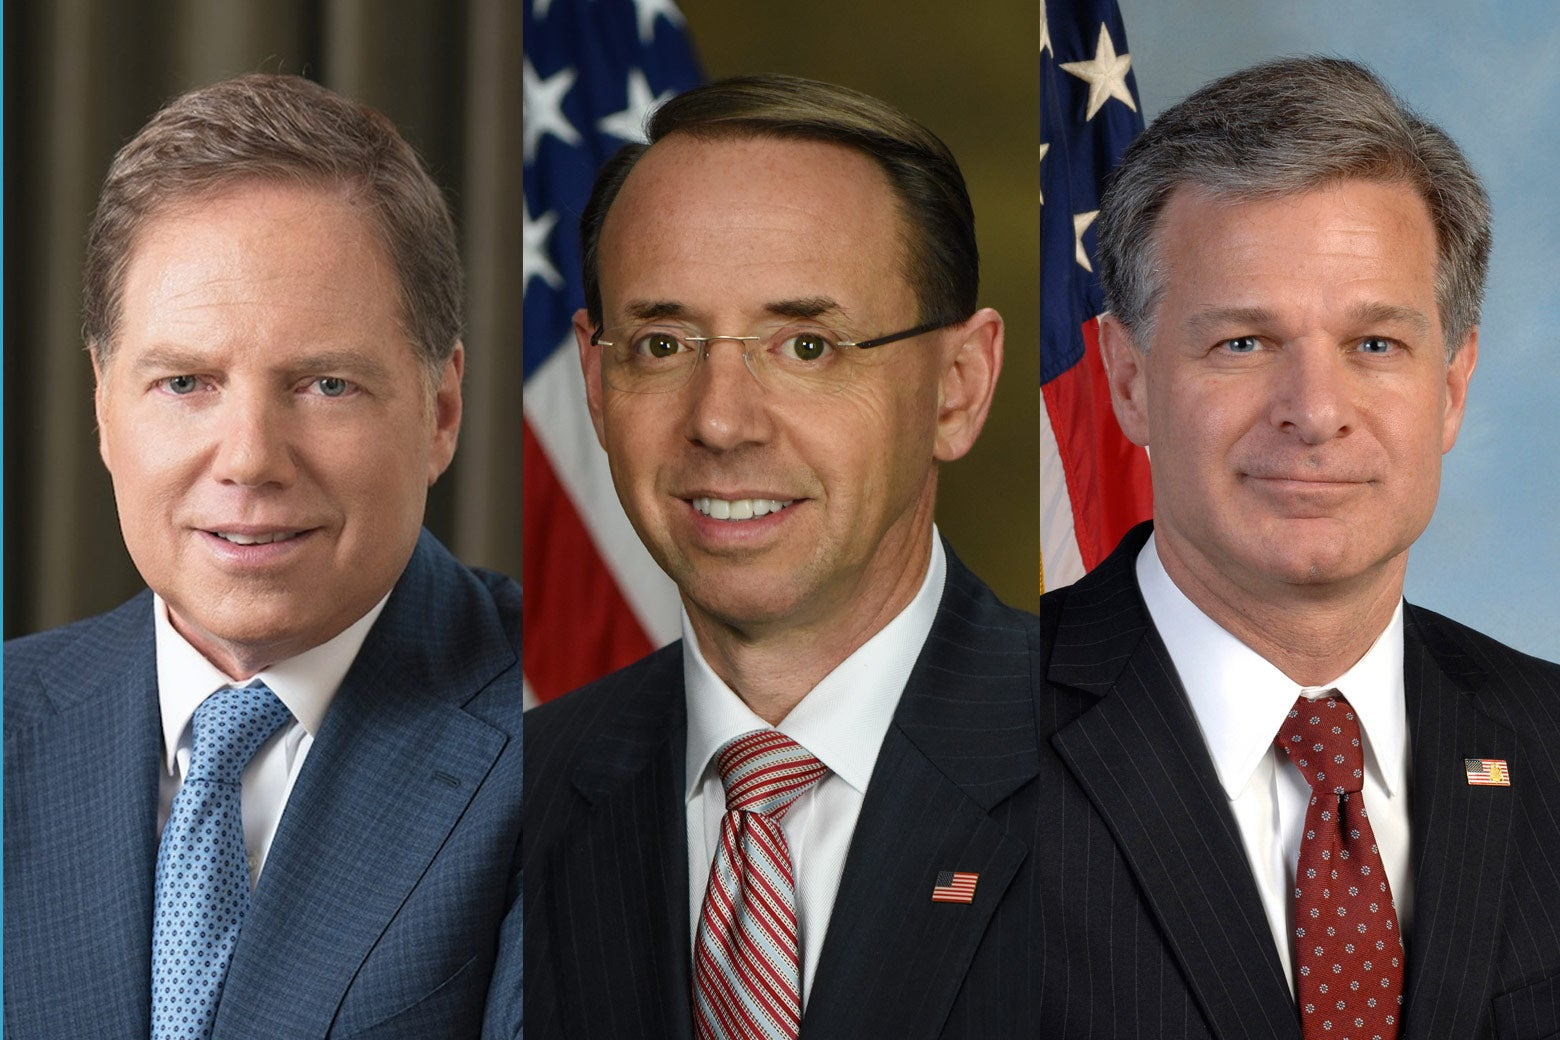 Geoffrey Berman, Rod Rosenstein, and Christopher Wray.